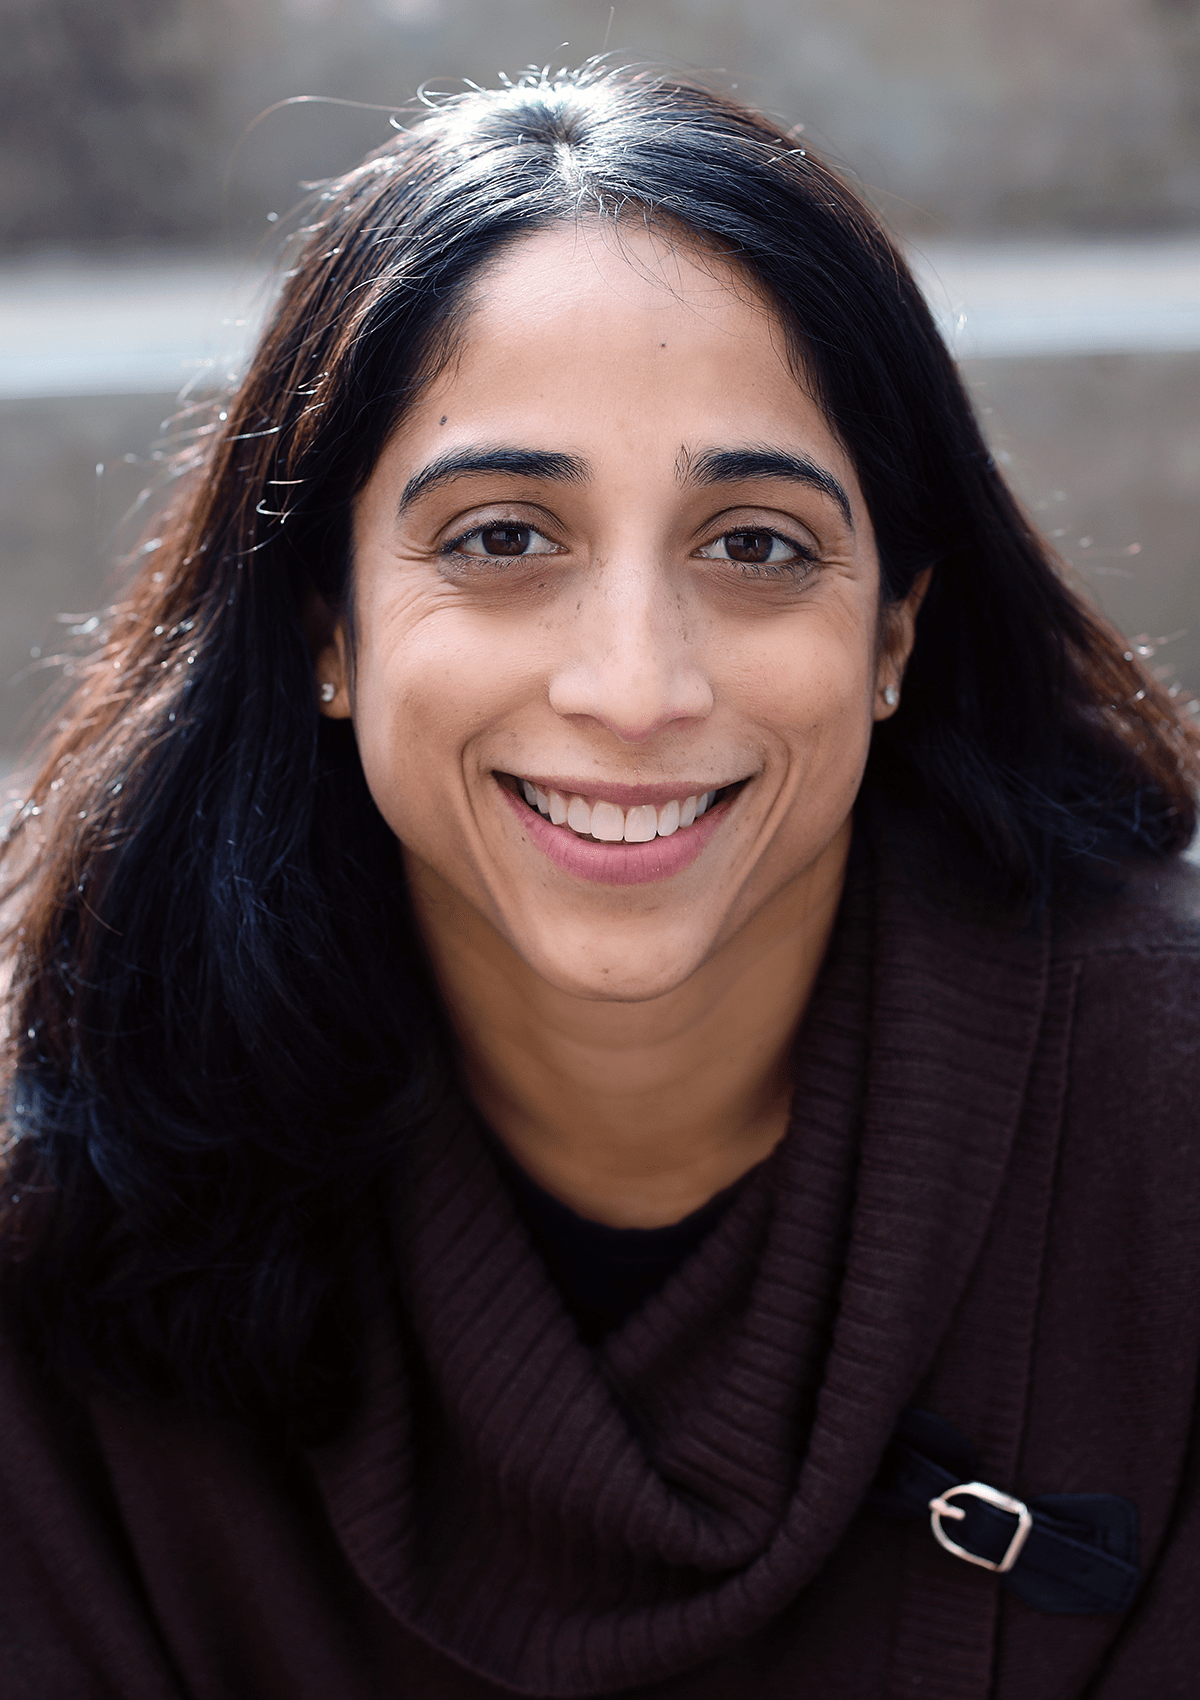 A photo of Theresa Alenghat.